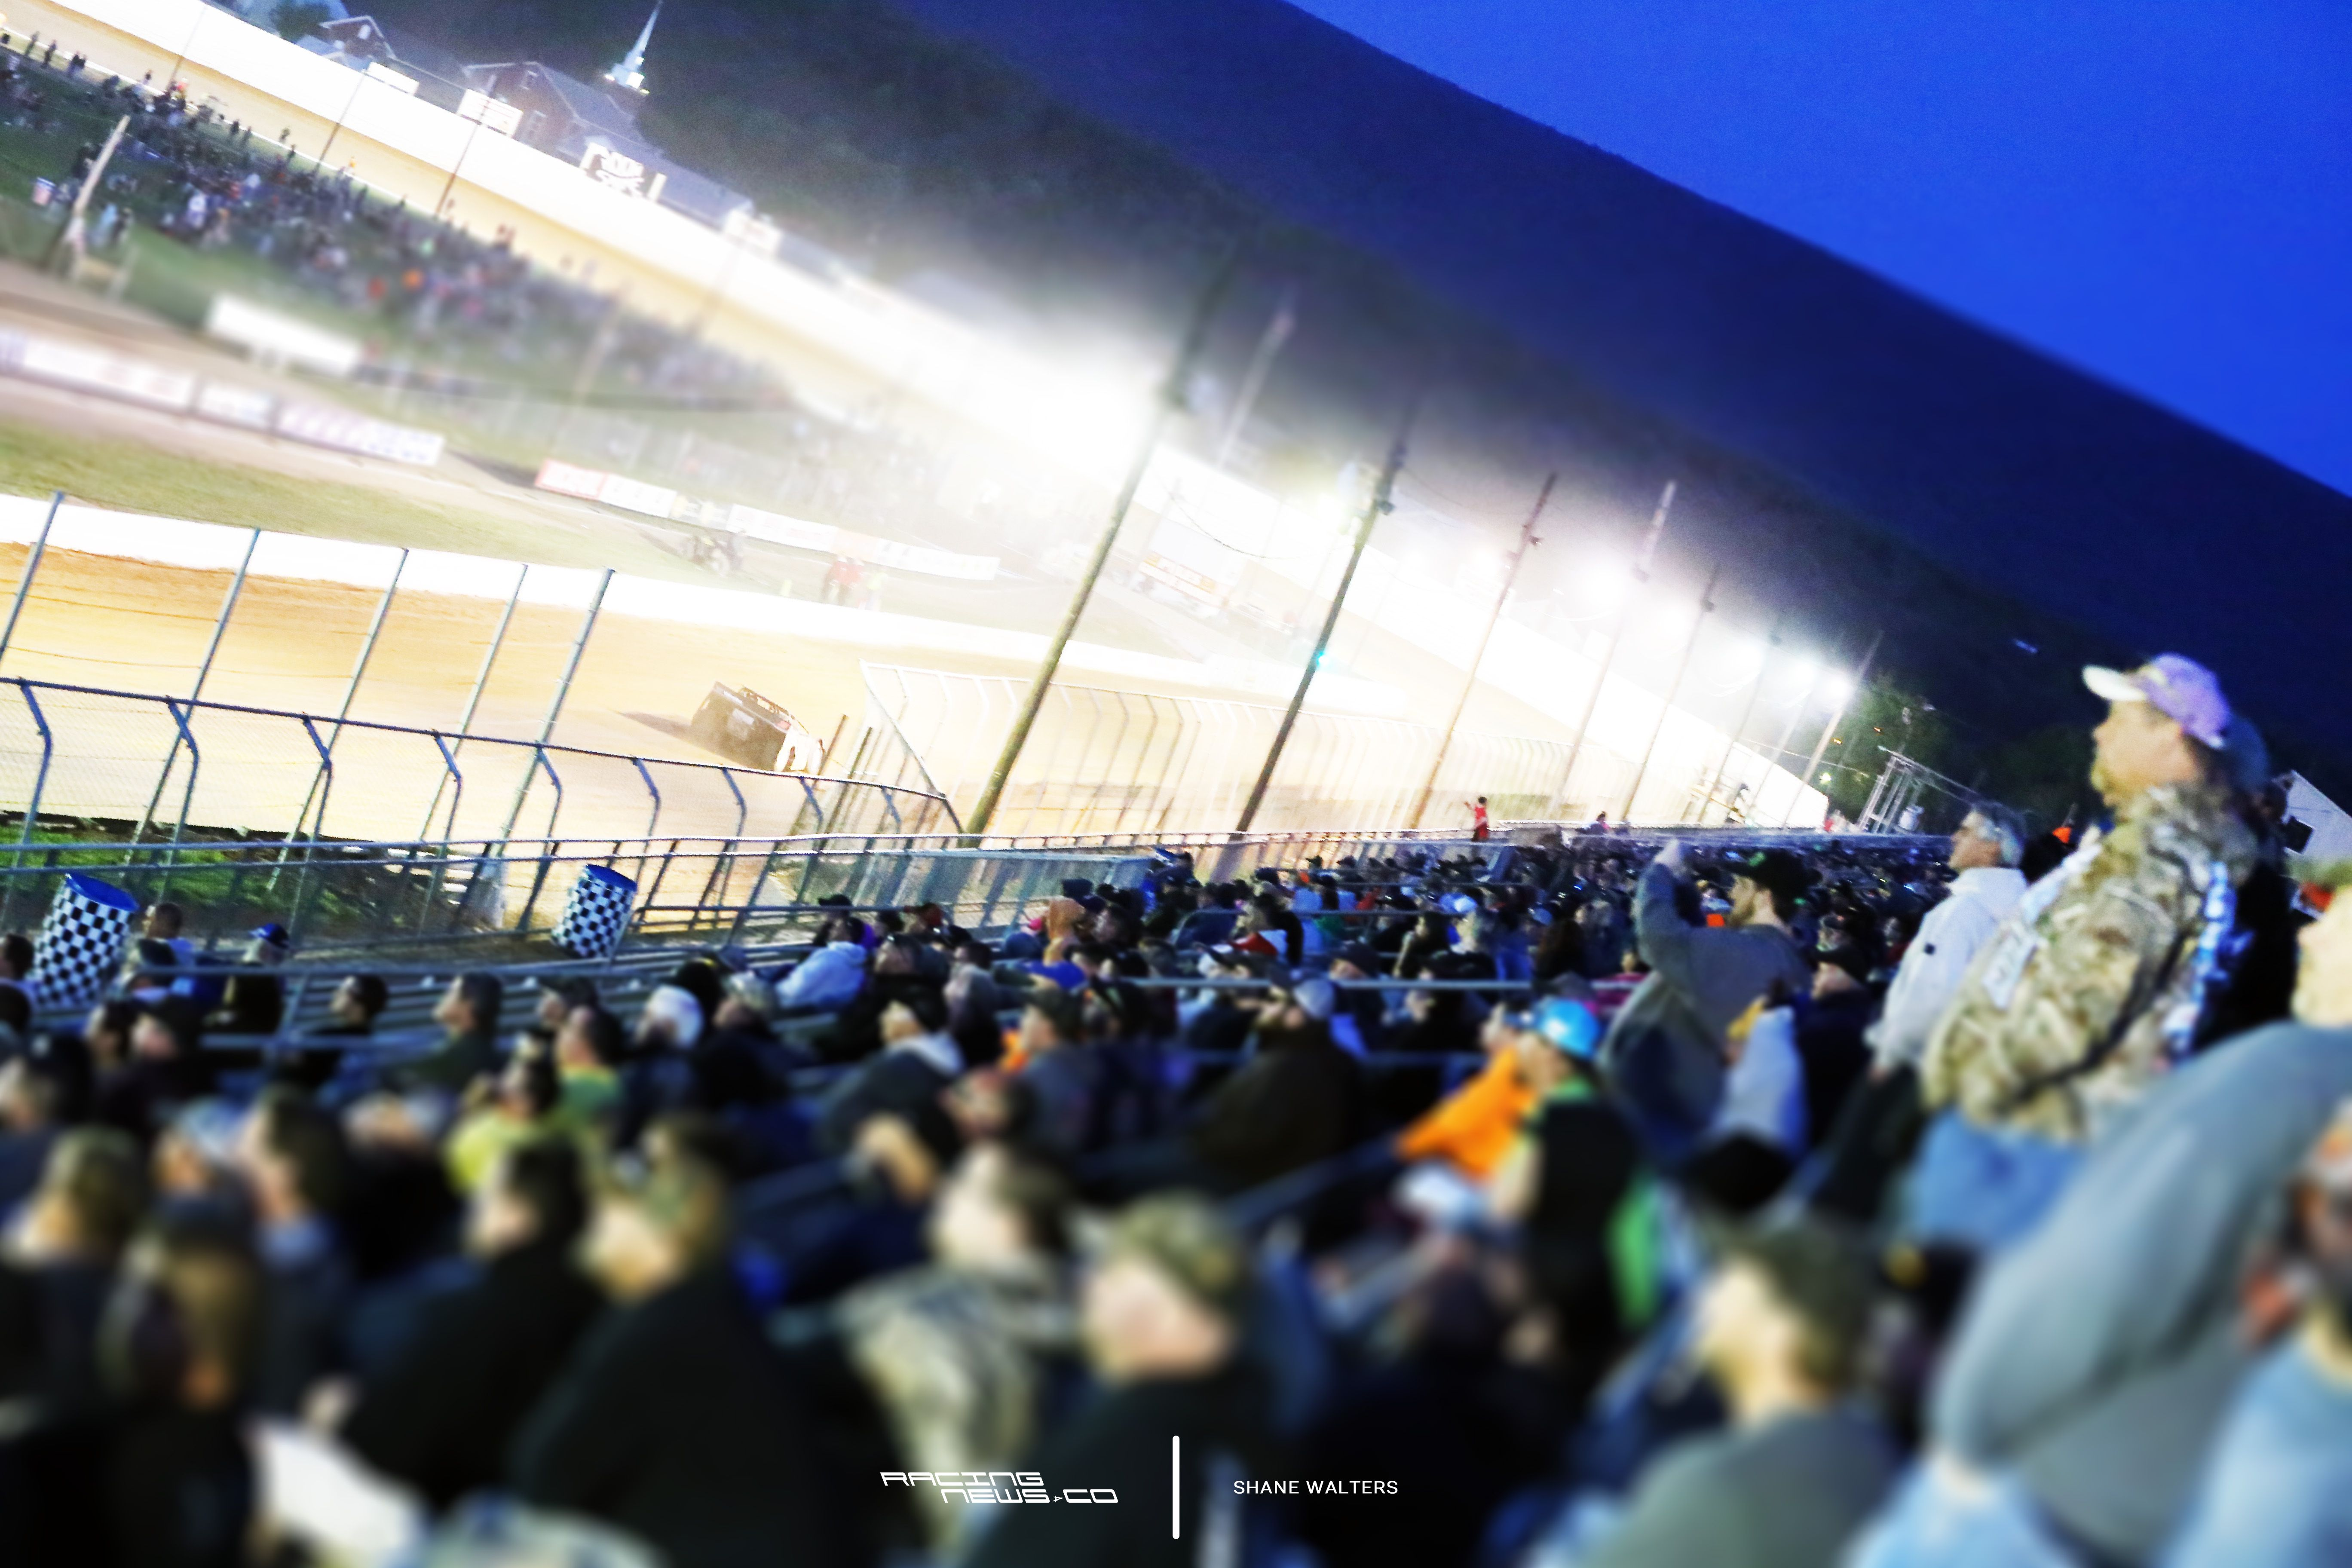 Photo from Port Royal Speedway https://racingnews.co/2017/04/23/port-royal-photos-april-23-2017-lucas-oil-late-model-dirt-series-2/ #portroyalspeedway